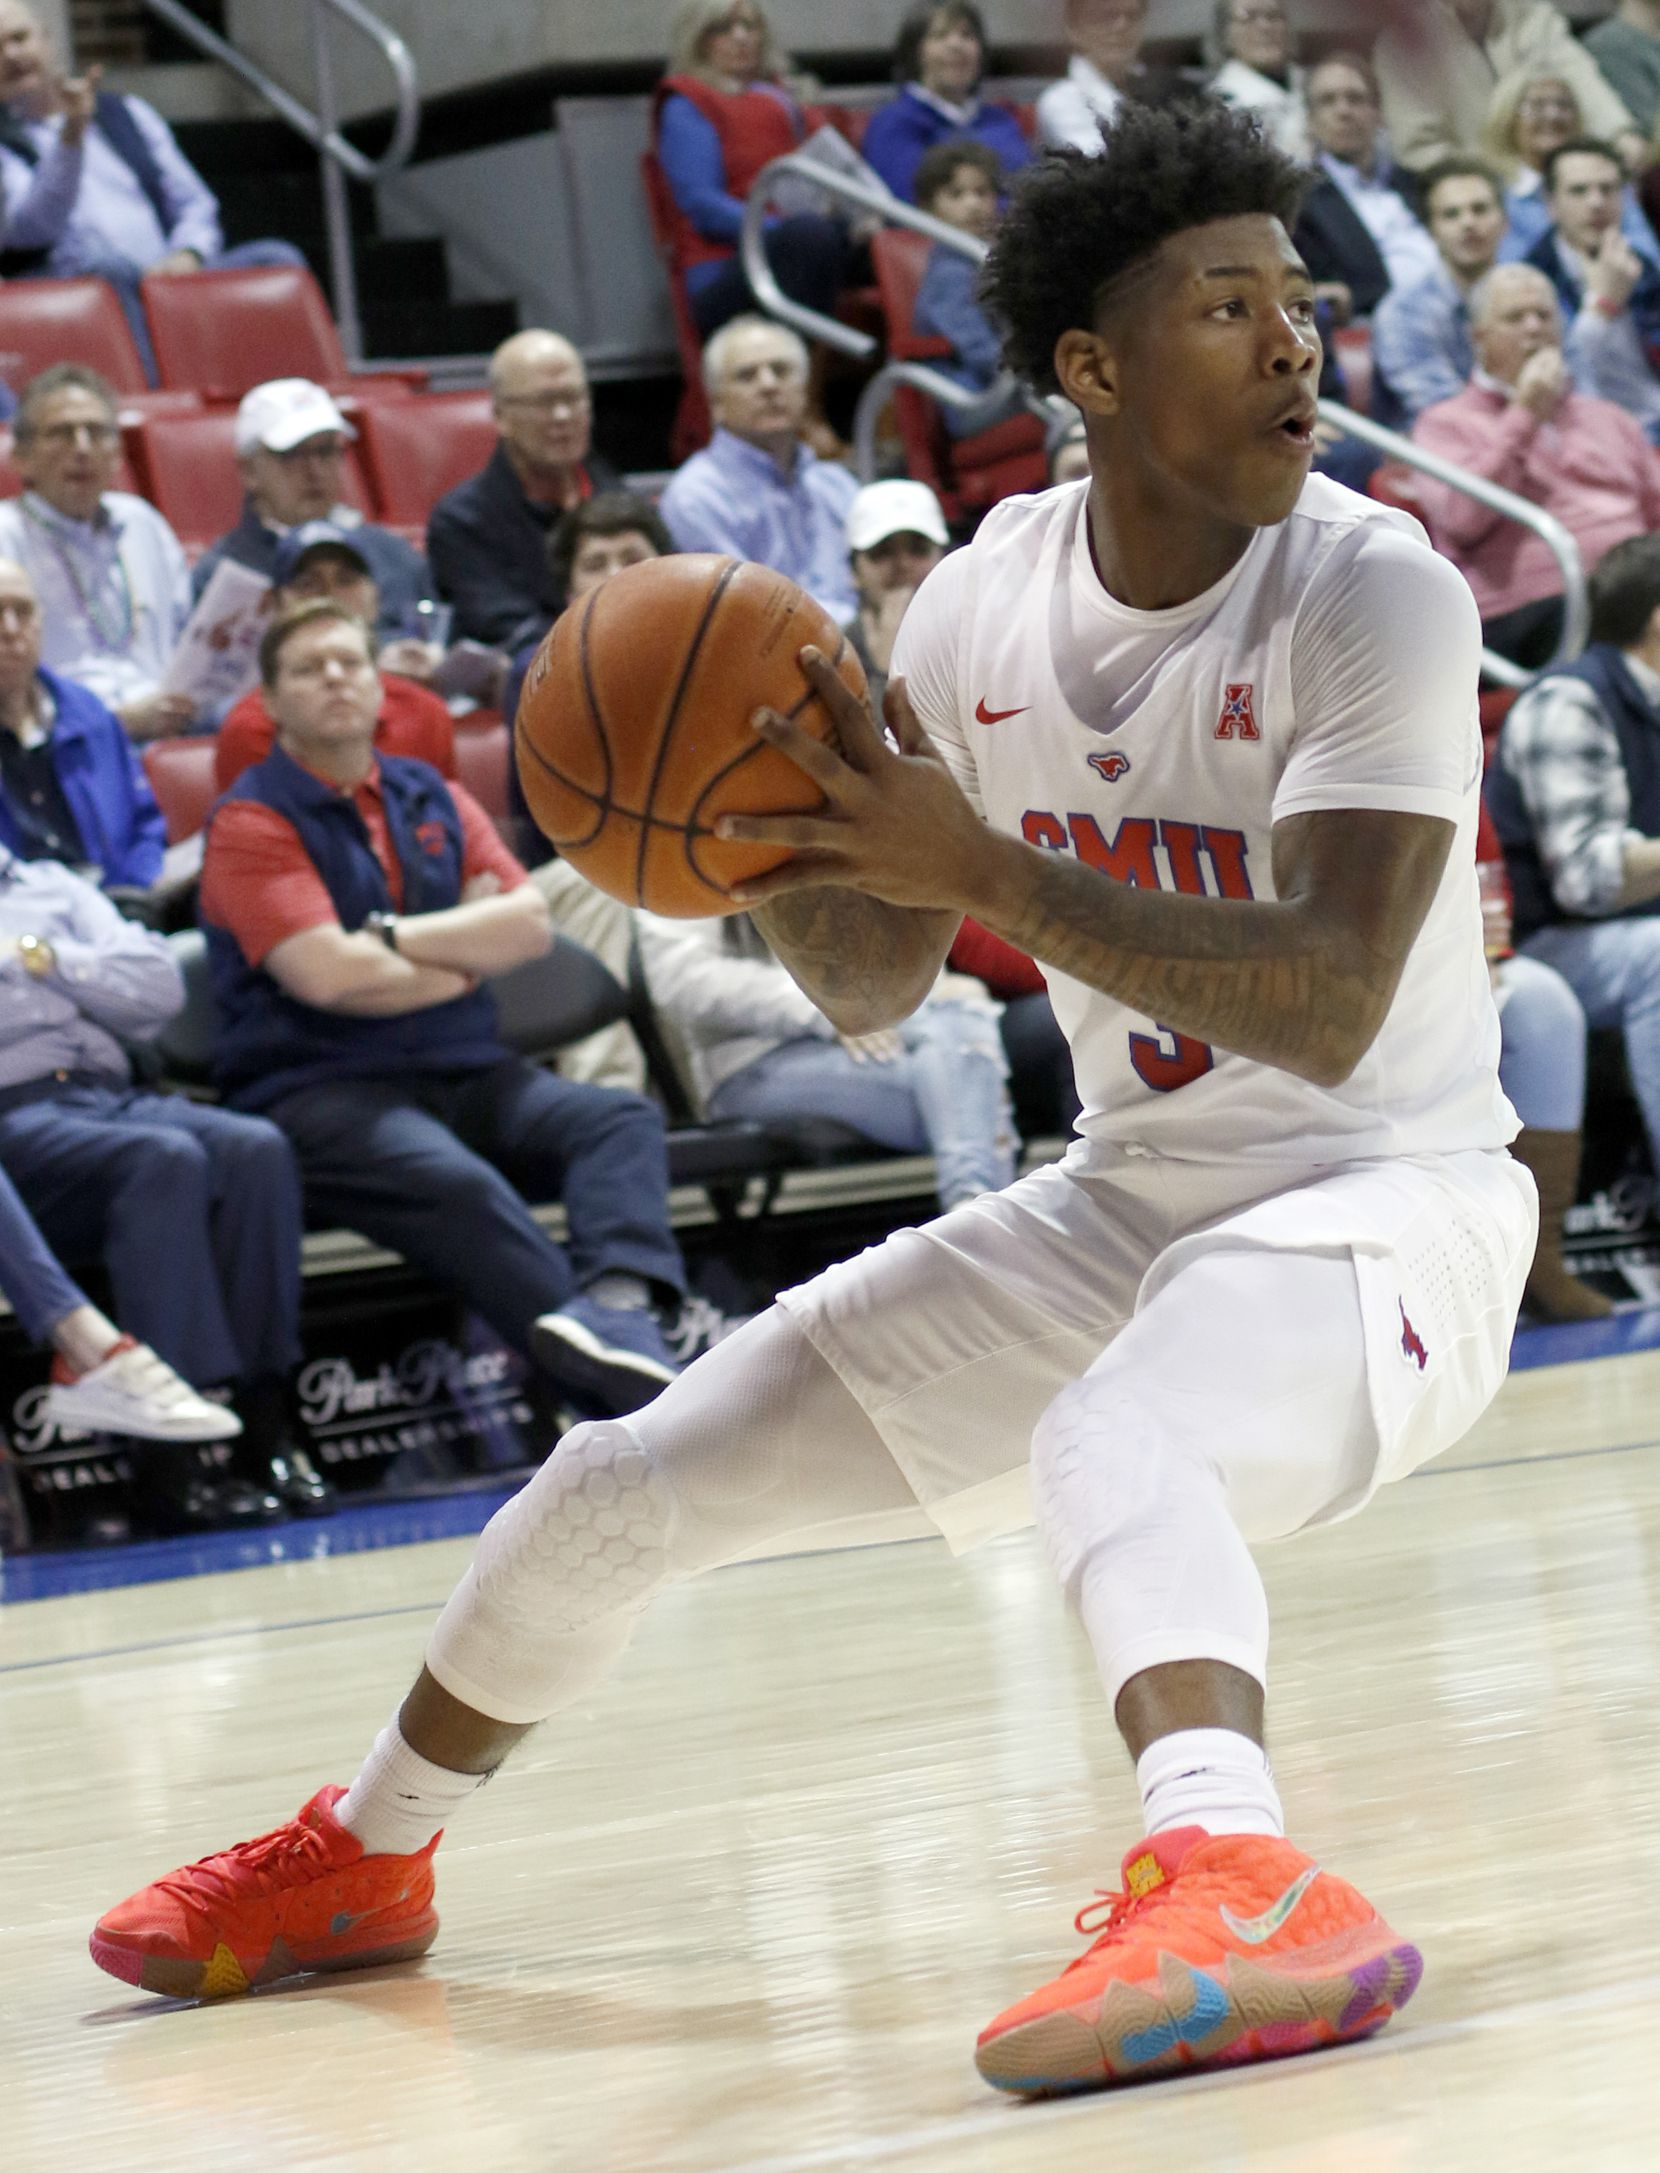 SMU guard Kendrick Davis (3) pumps the brakes as he looks to pass during first half action against Memphis. SMU won 58-53. The two teams from the NCAA's American Athletic Conference played their men's basketball game at SMU's Moody Coliseum in Dallas on February 25, 2020.